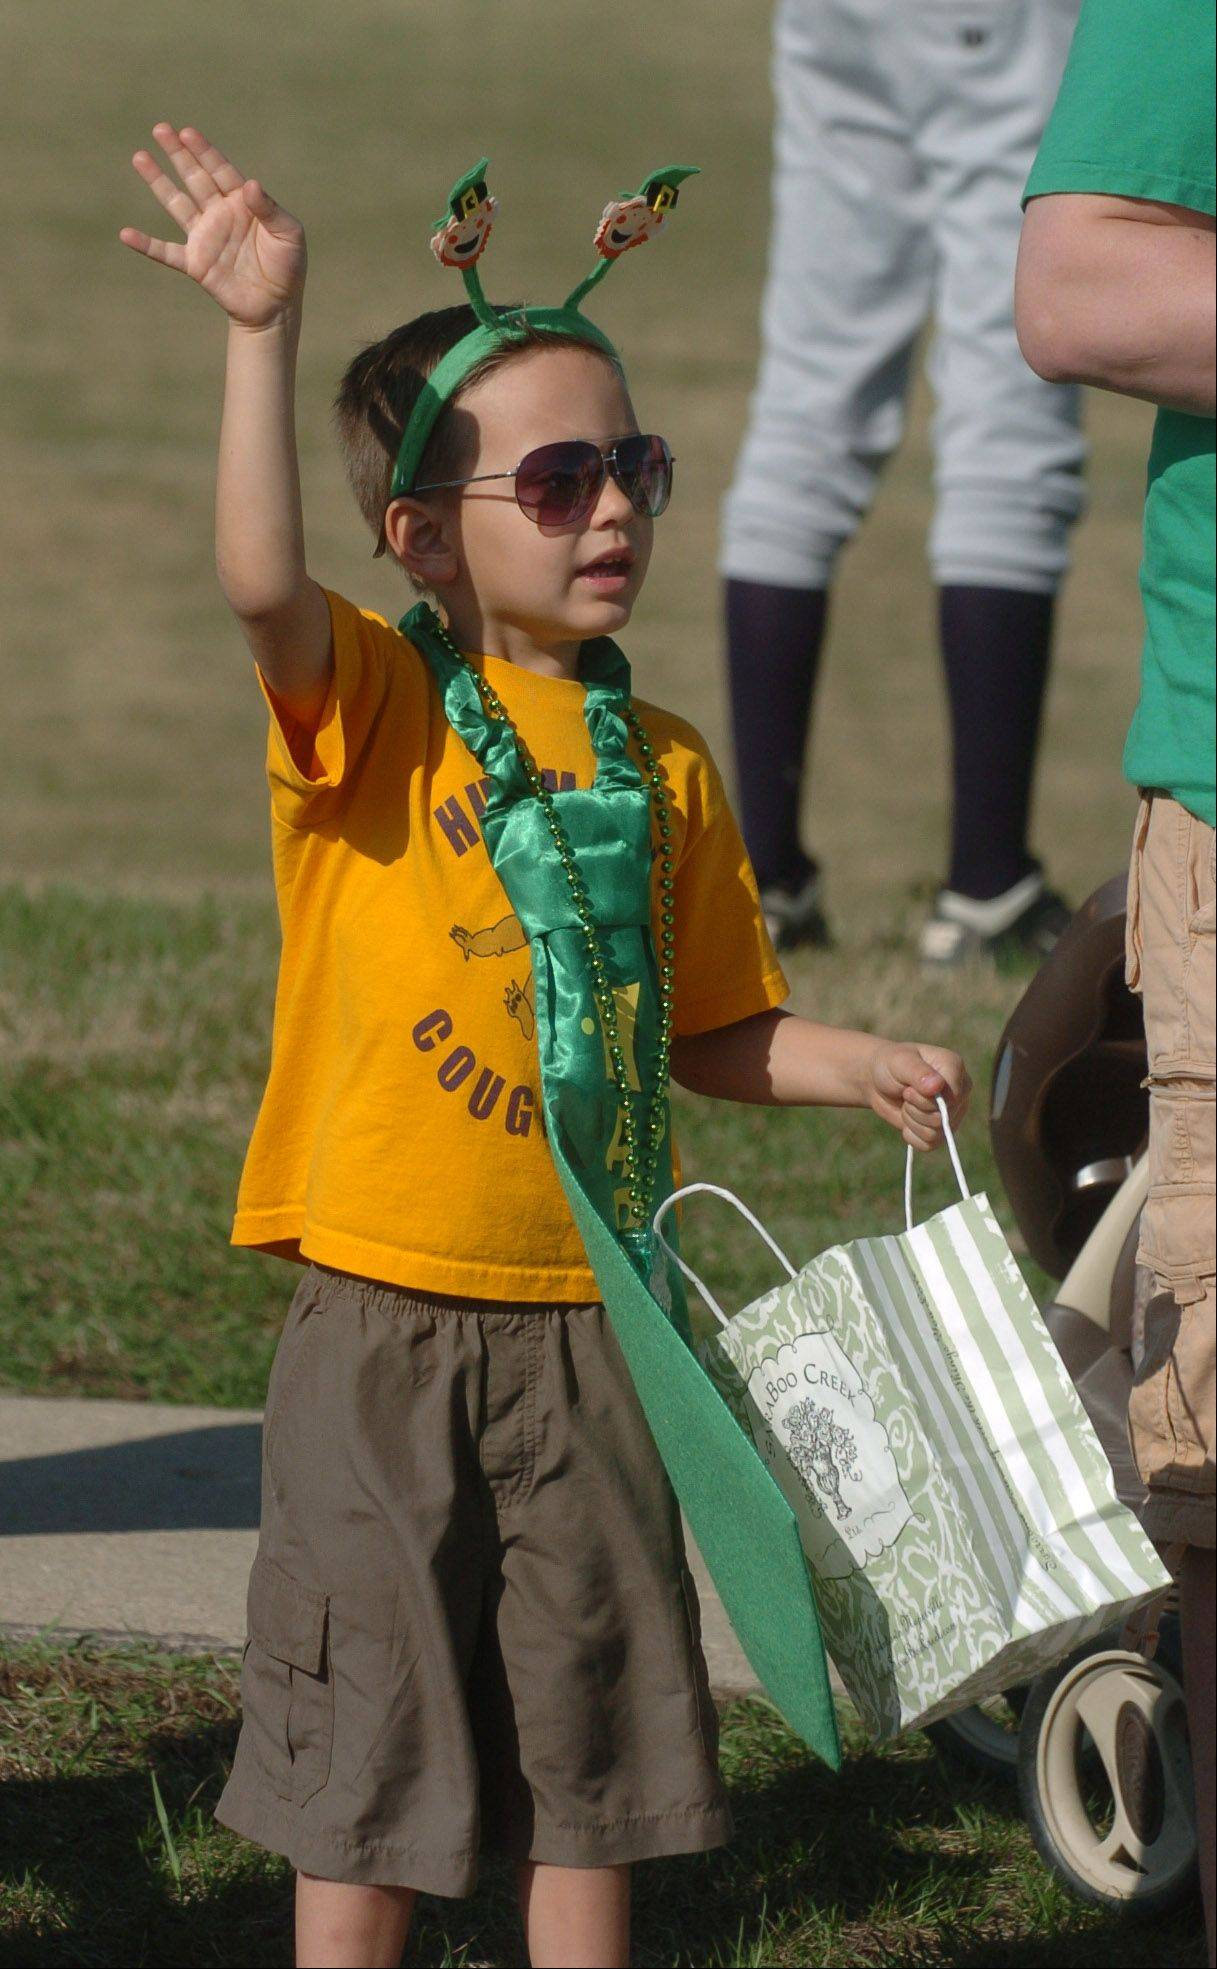 Colin Brown,5, of Naperville waves to the folks in the parade in hope of getting candy during the St. Patricks day parade in Naperville Saturday. Well over 3,000 people took part in this event that was complemented by beautiful weather.